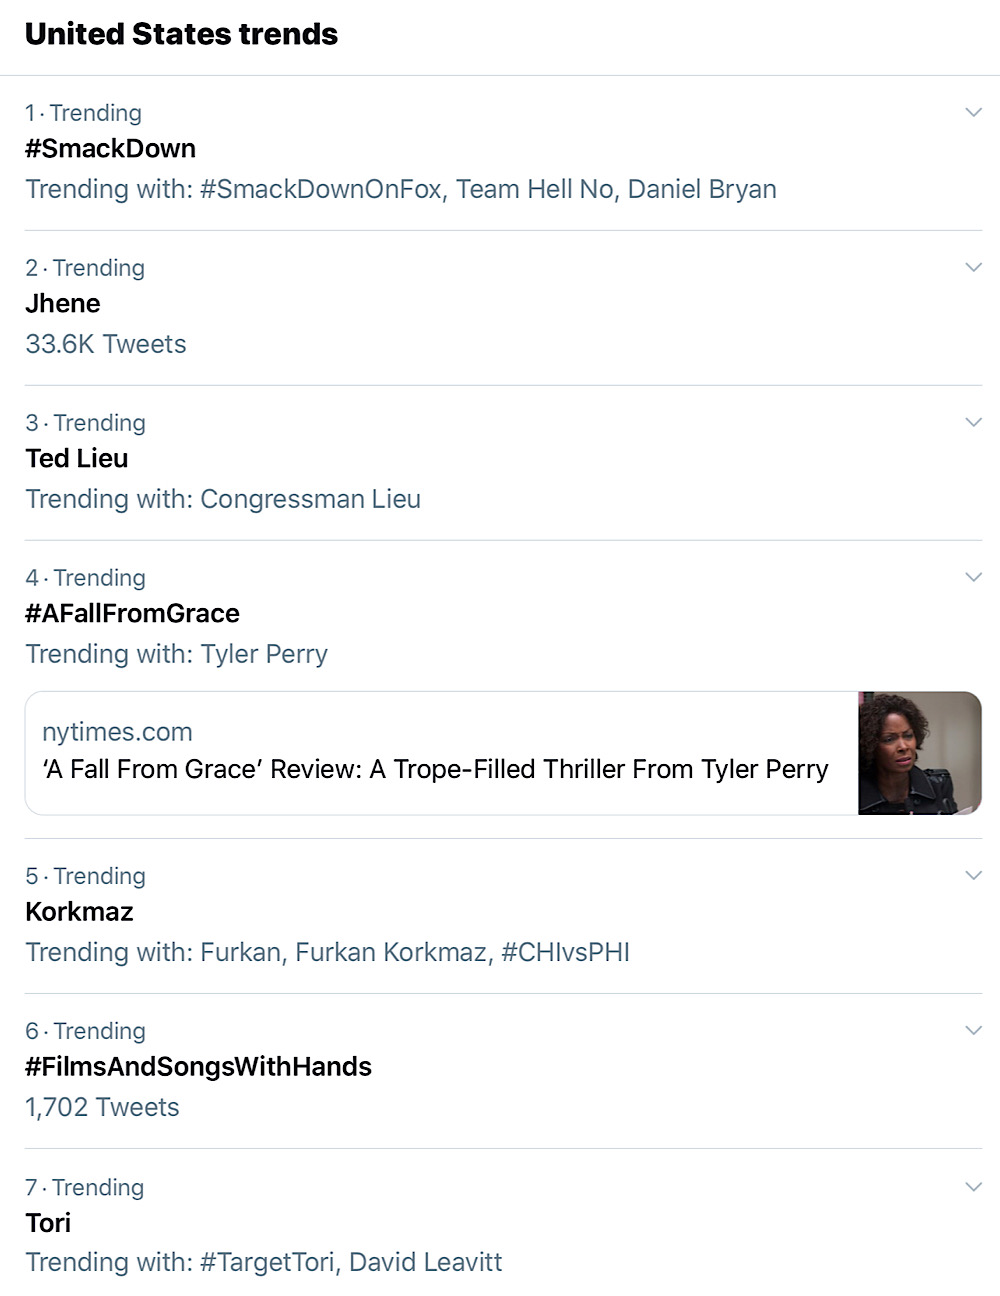 #Tori started to trend on Twitter as users showed their support for her after dealing with Leavitt